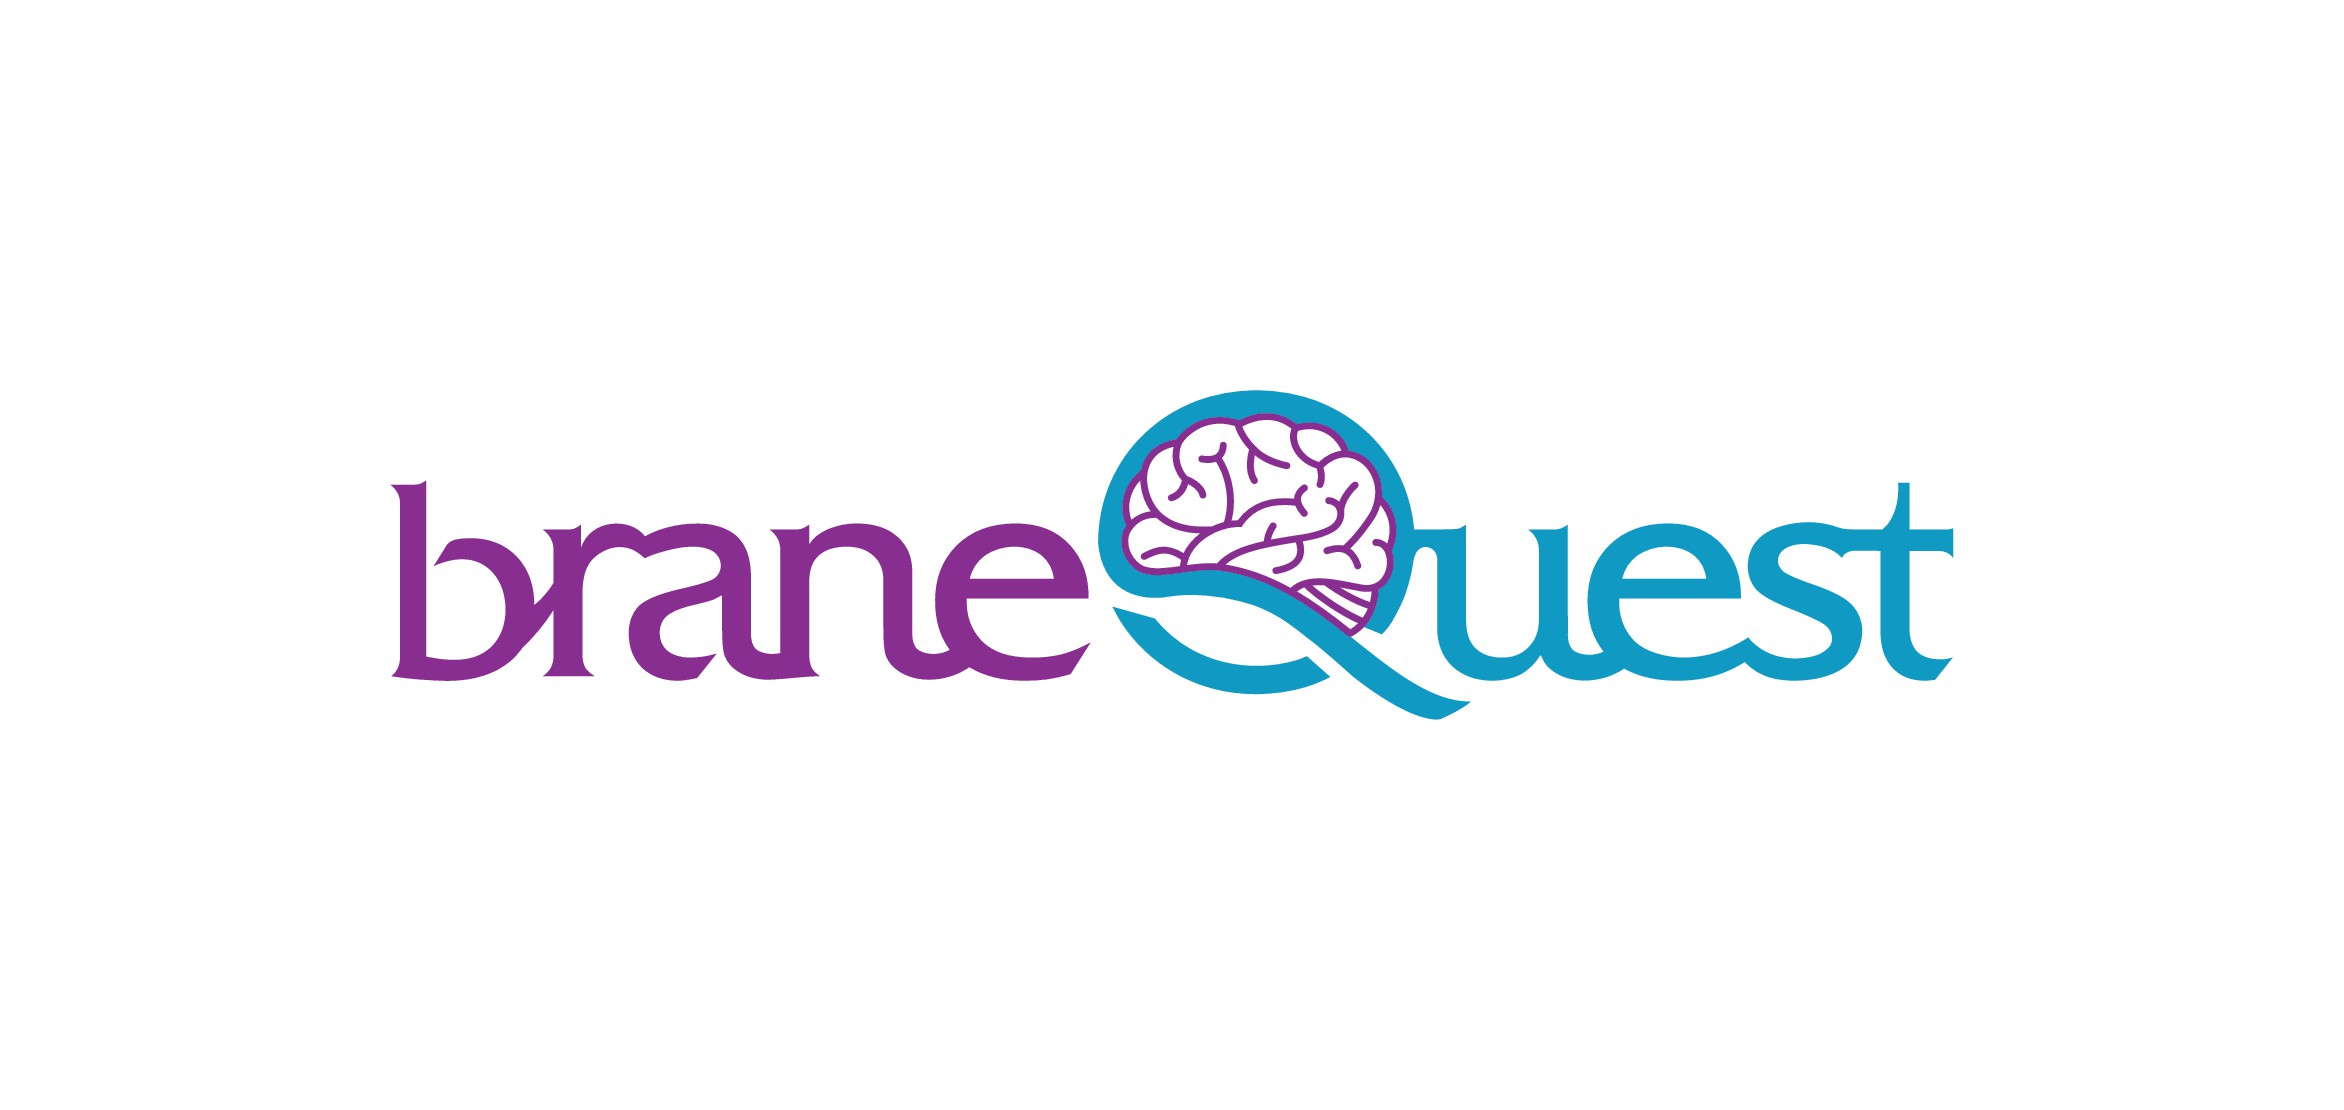 BraneQuest needs a logo for our quest to discover drugs that act on the brain (brane)